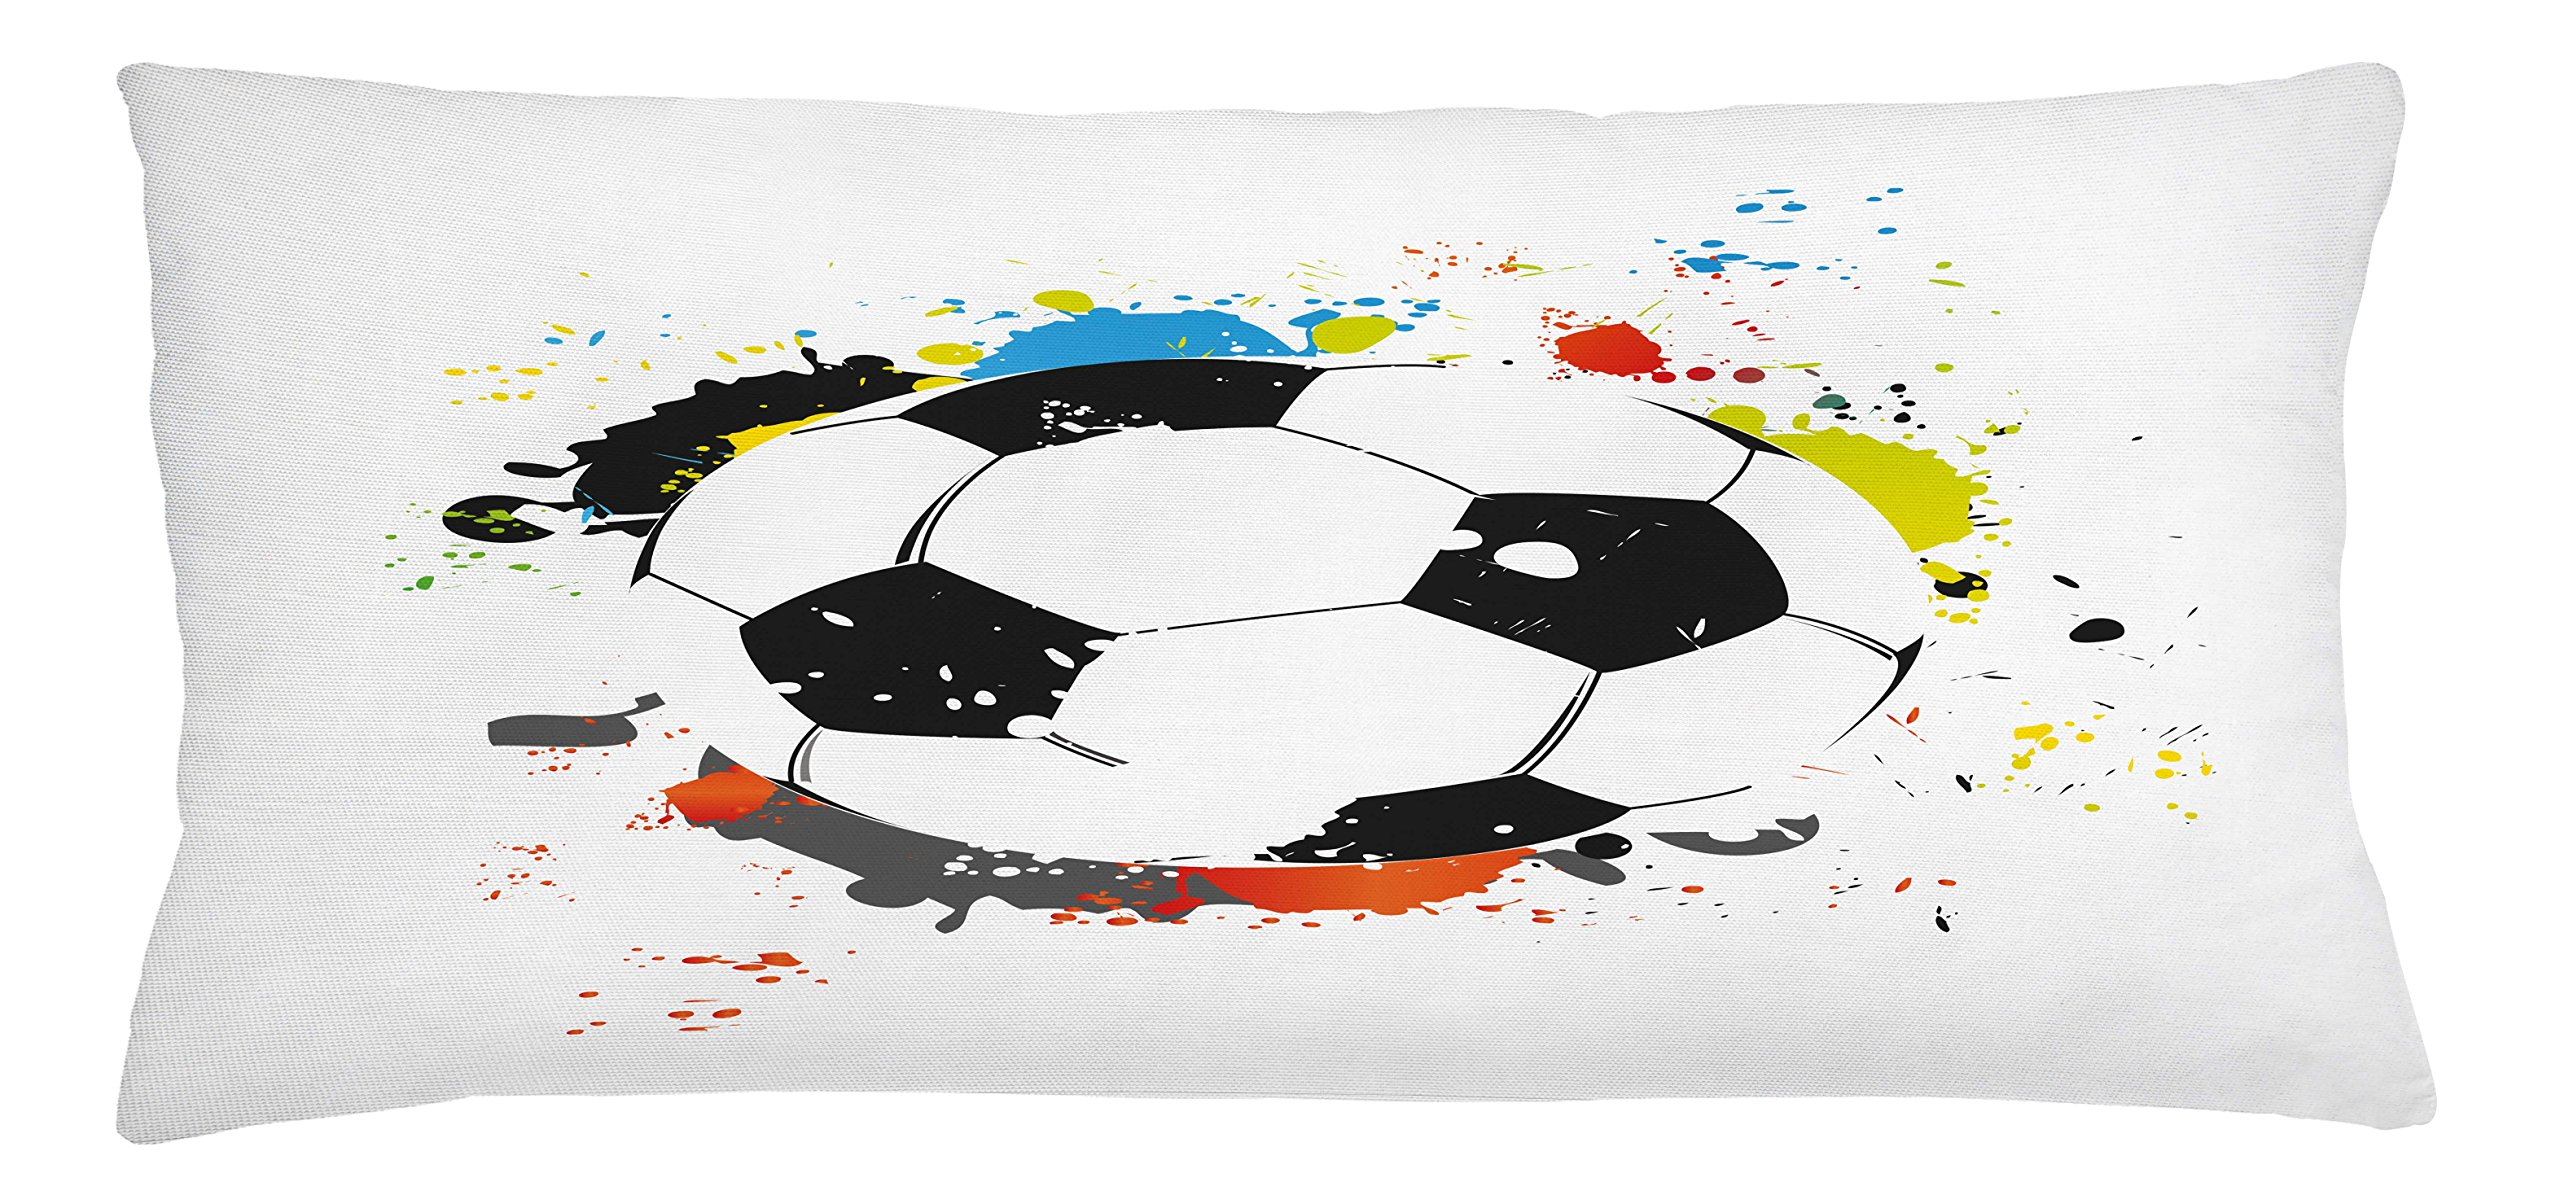 Lunarable Boy's Room Throw Pillow Cushion Cover, Abstract Grunge Soccer Ball in Rainbow Colors Game Hobby Activity, Decorative Square Accent Pillow Case, 36 X 16 inches, Black White Multicolor